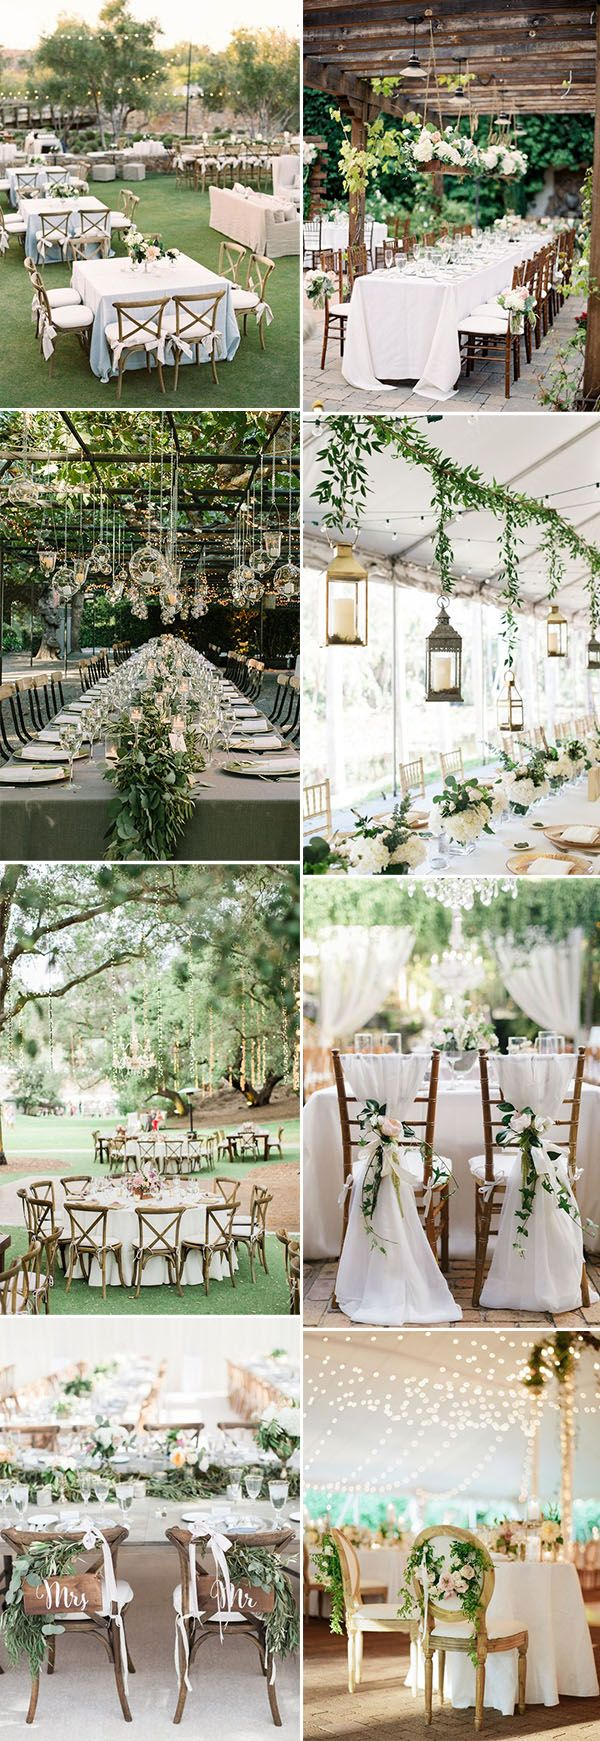 Outdoor garden wedding decoration ideas   Most Inspiring GardenInspired Wedding Ideas  Garden weddings